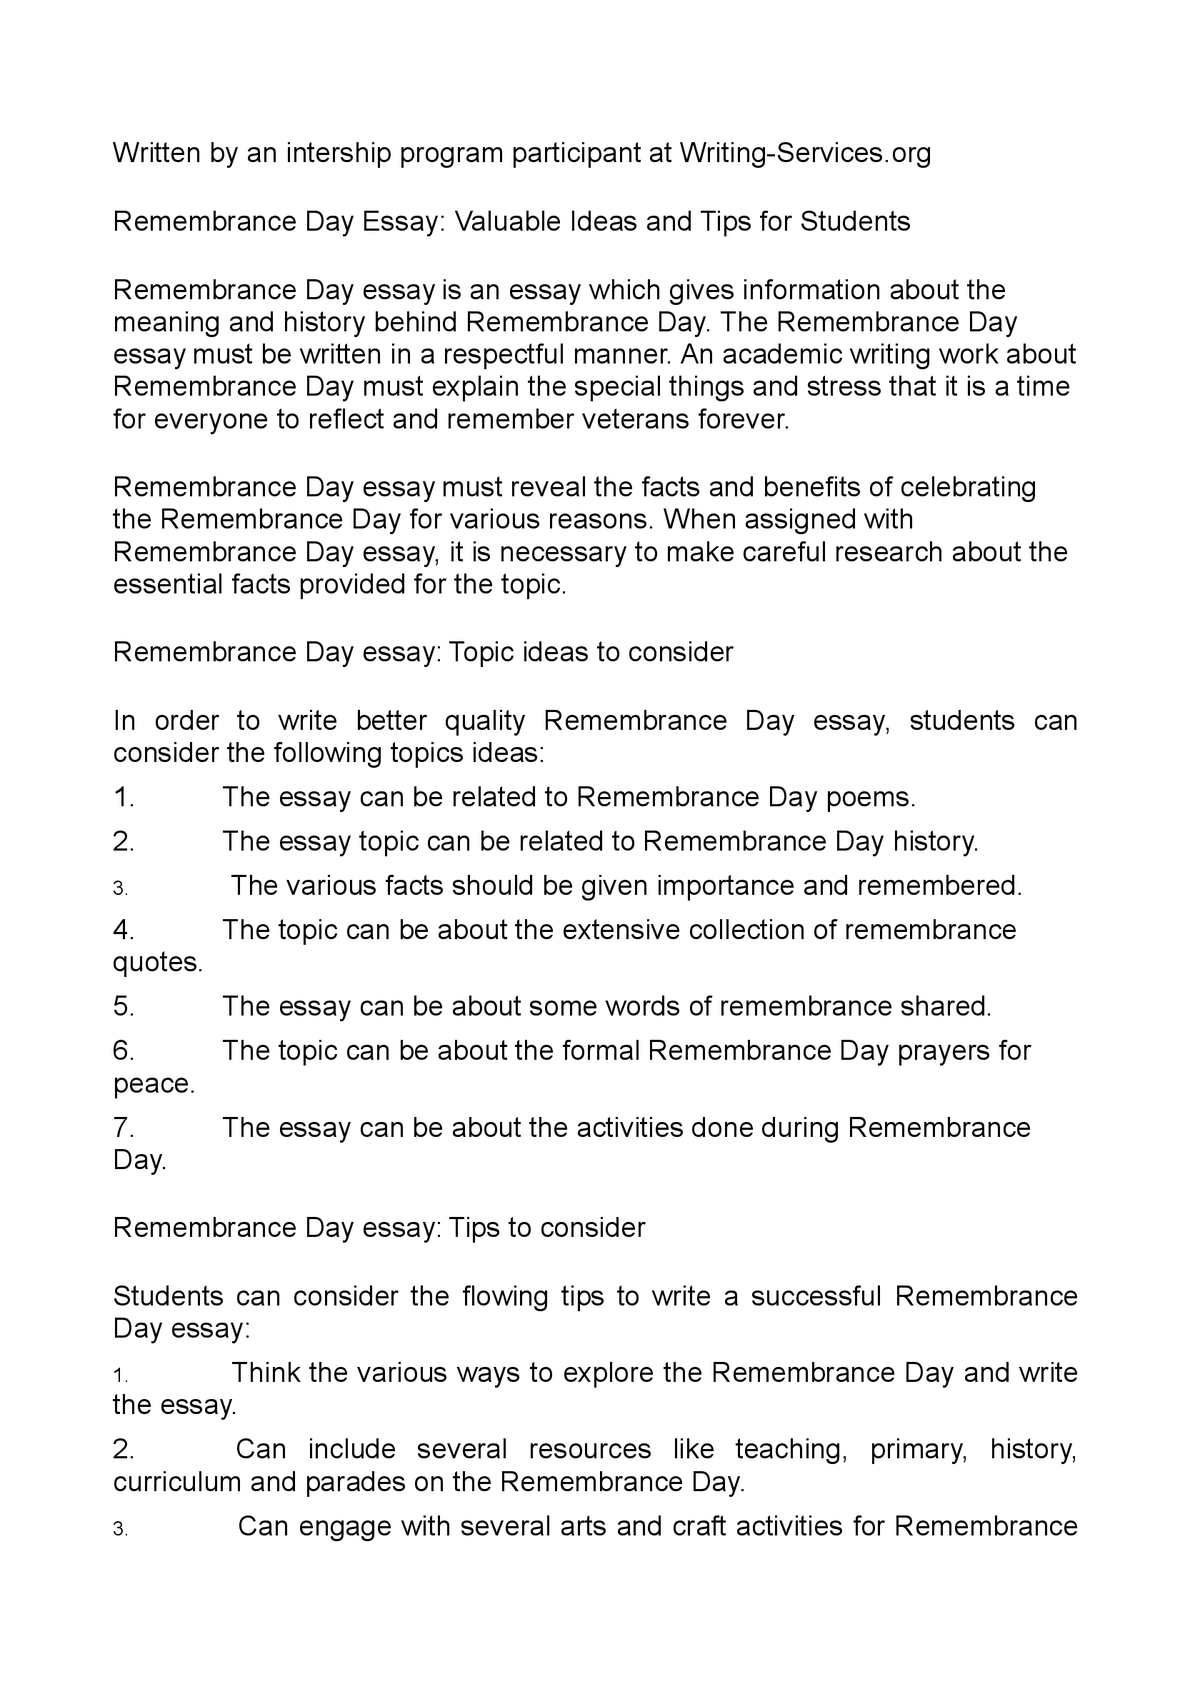 calam eacute o remembrance day essay valuable ideas and tips for students